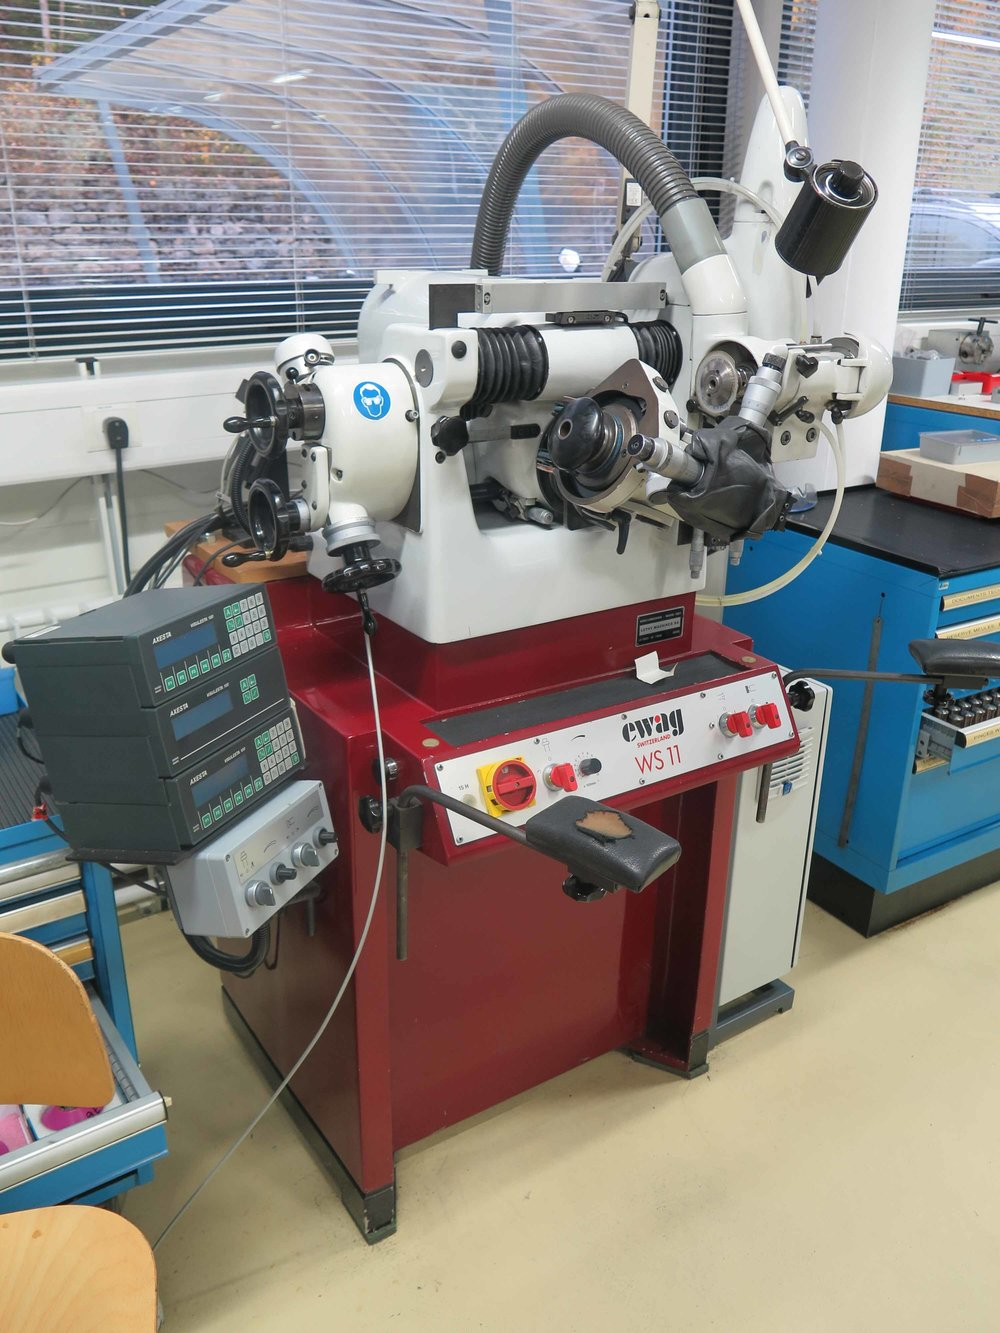 The WS 11 universal grinding machines are suitable for the manufacture and regrinding of high-precision micro tools and production parts from hard metal, steel or other materials.